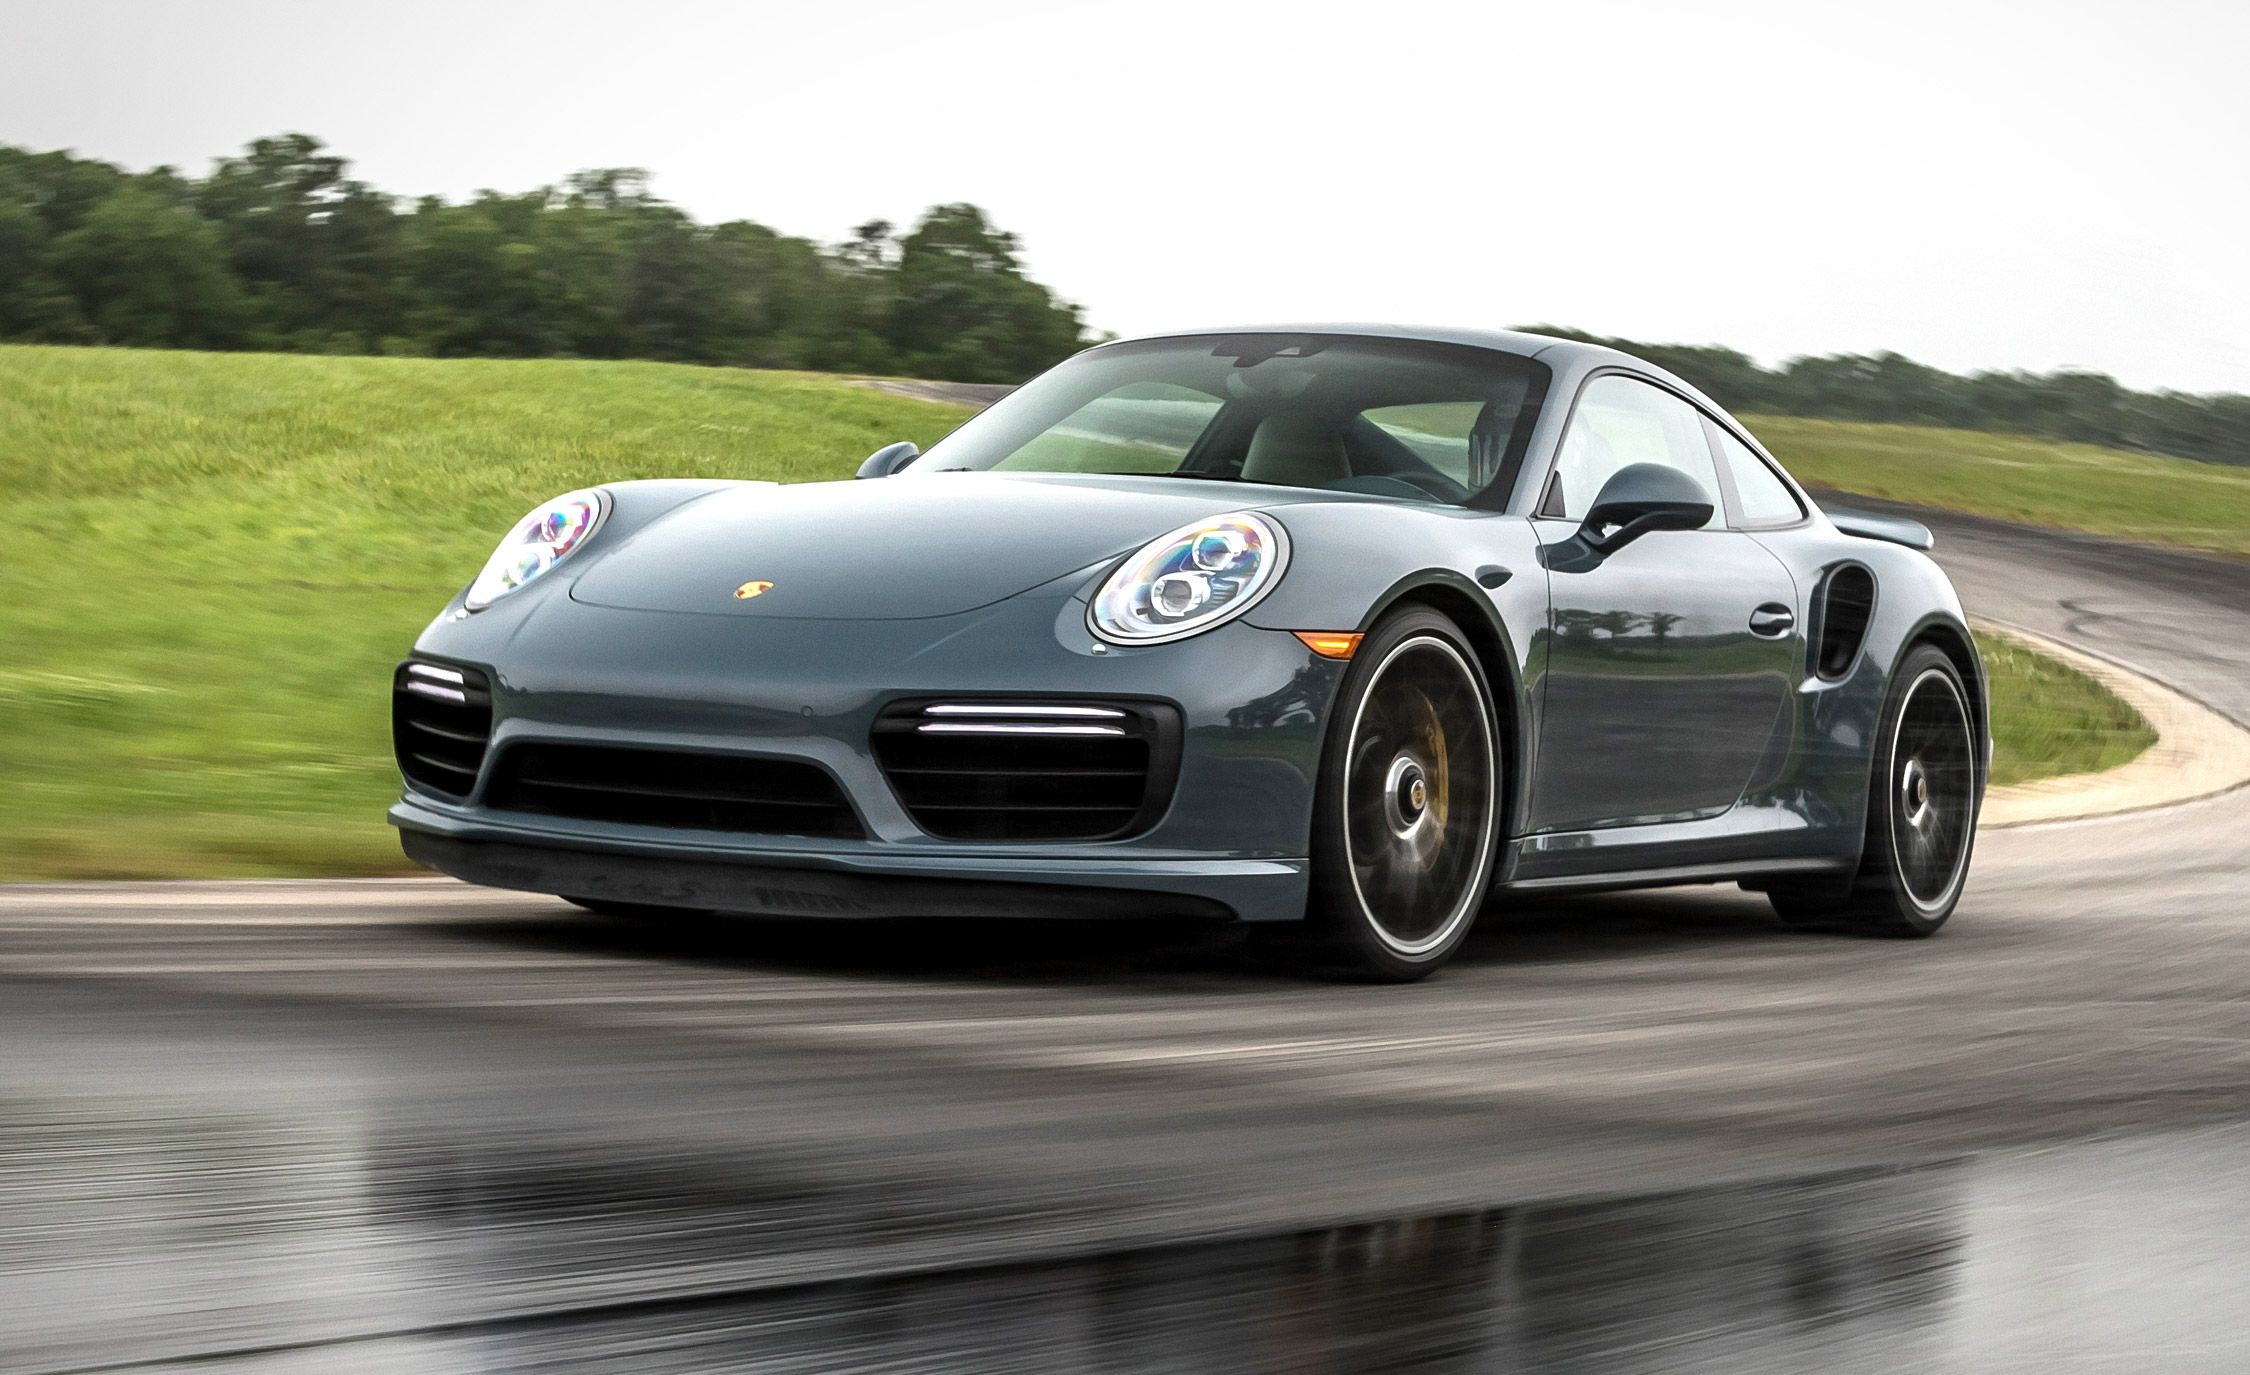 porsche 911 turbo s at lightning lap 2017 feature car and driver